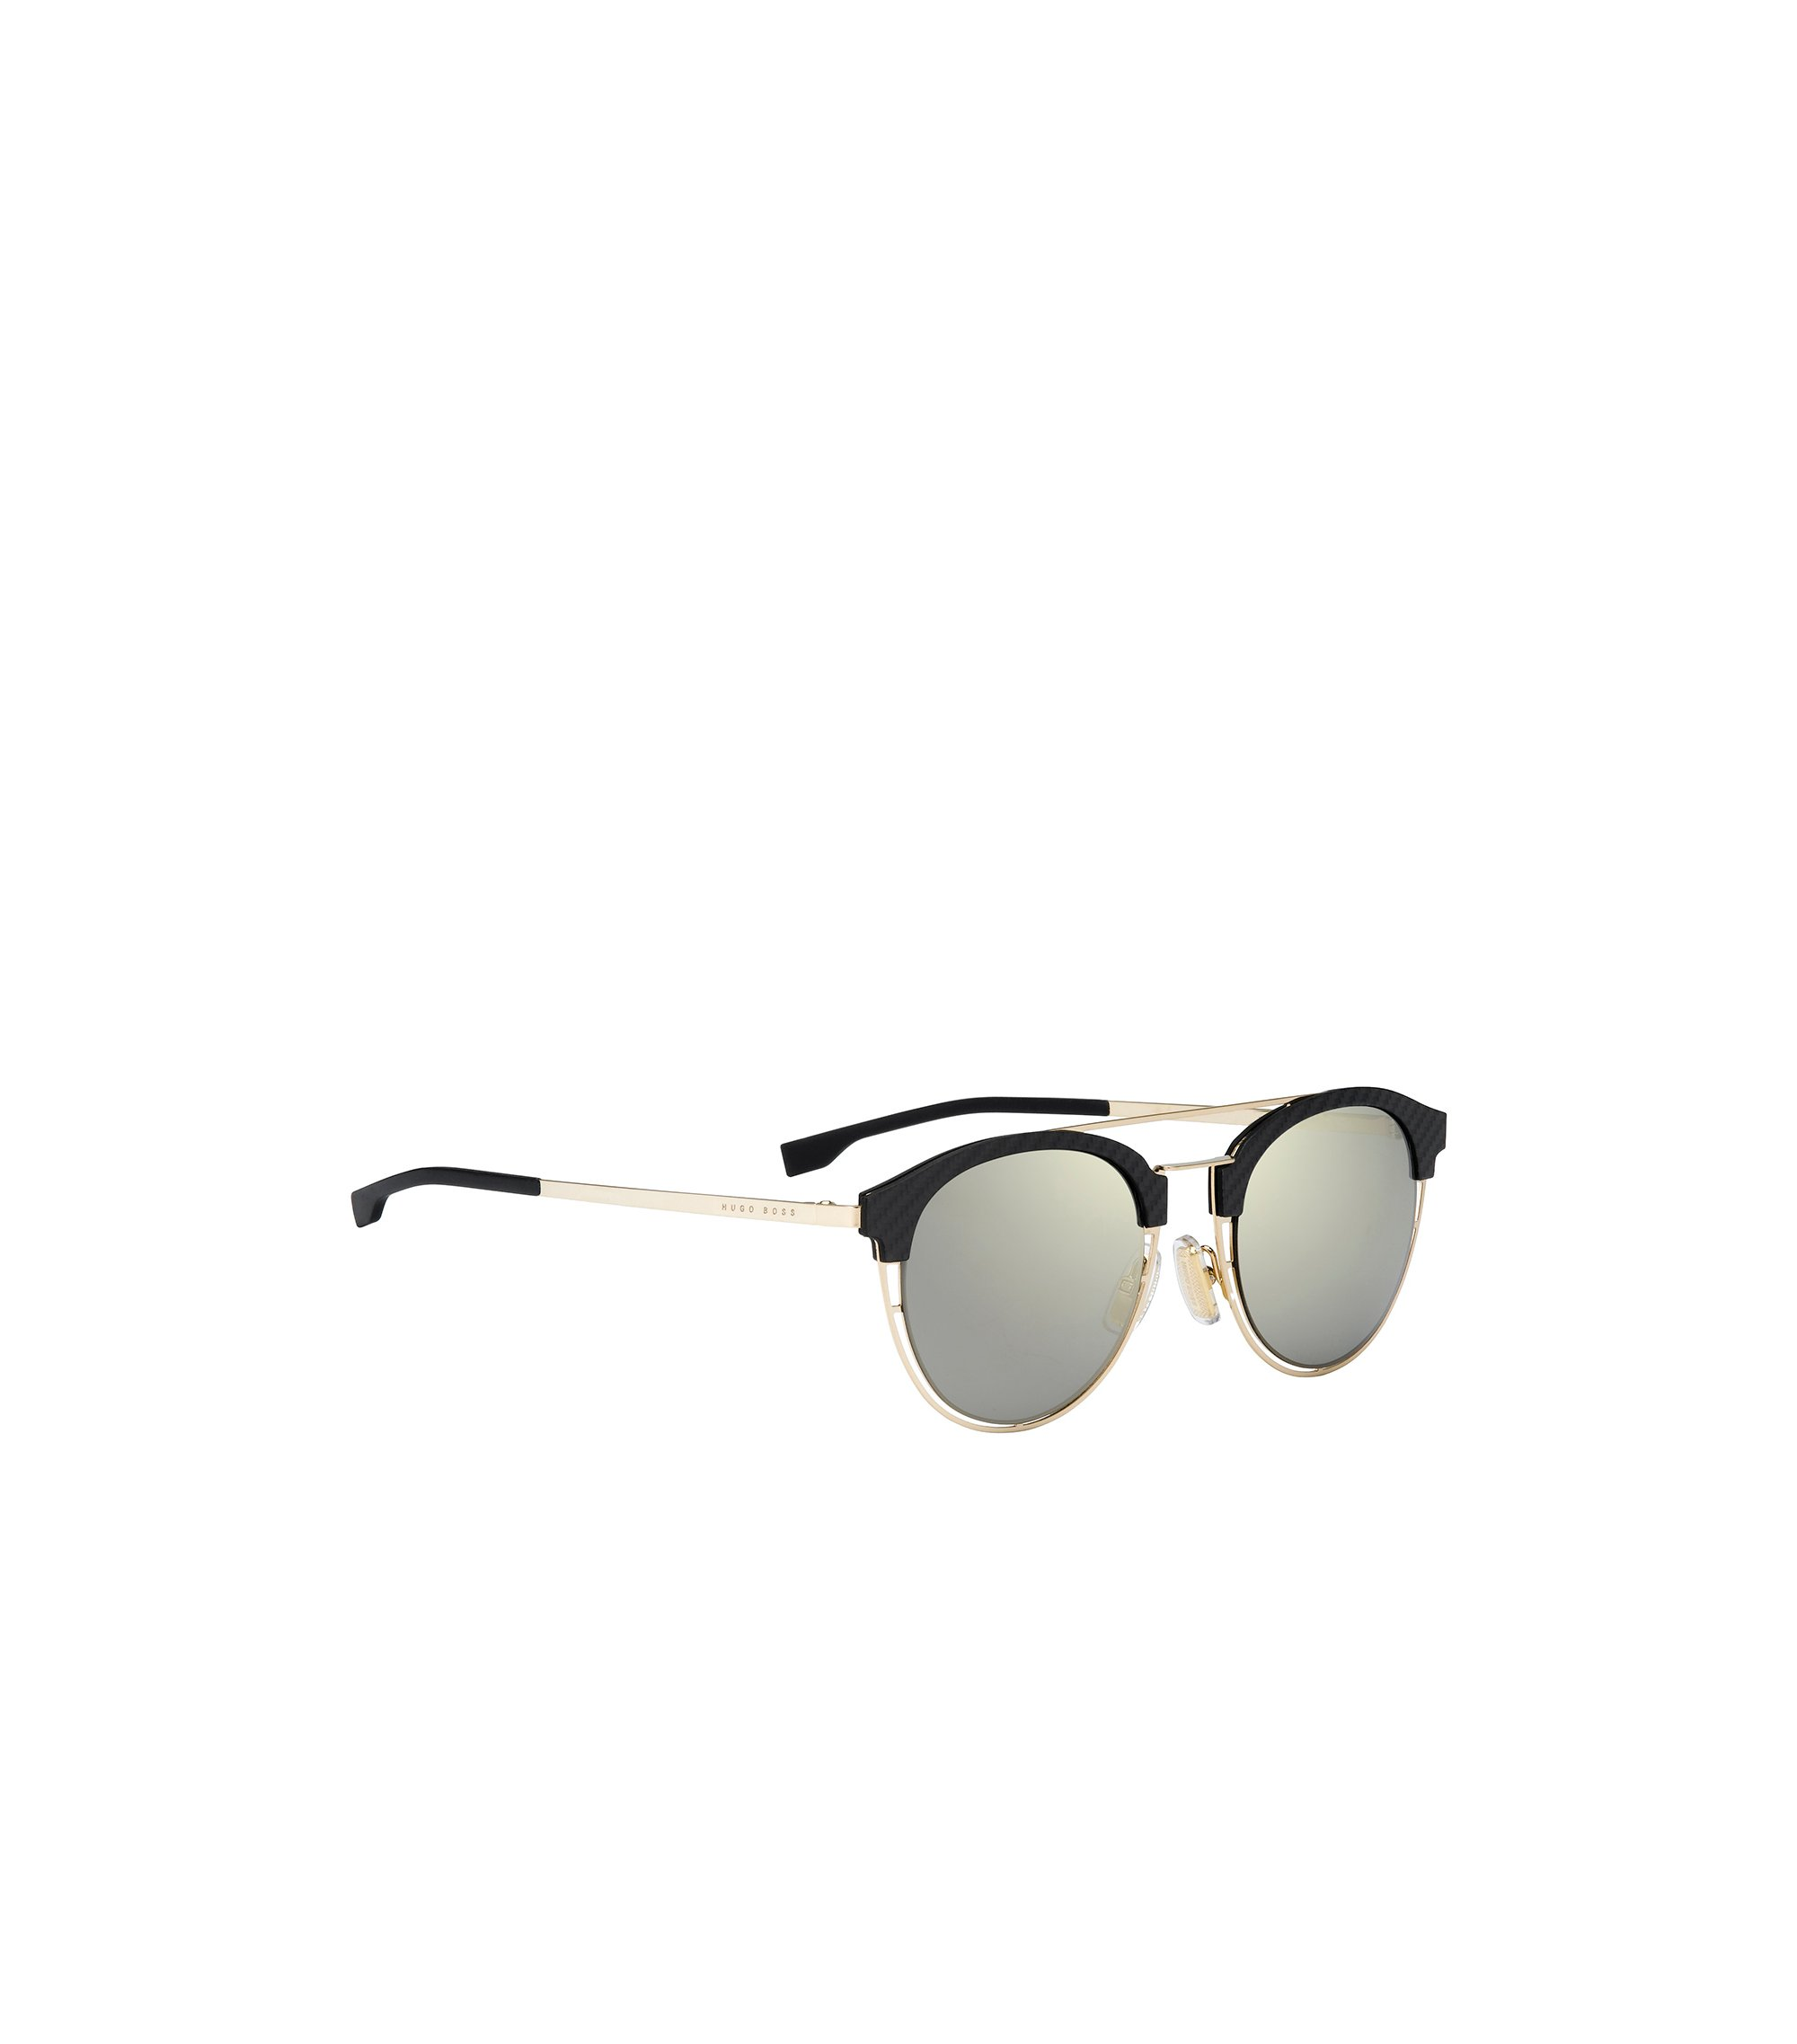 Grey Bronze Lens Clubmaster Sunglasses | BOSS 0784S, Assorted-Pre-Pack